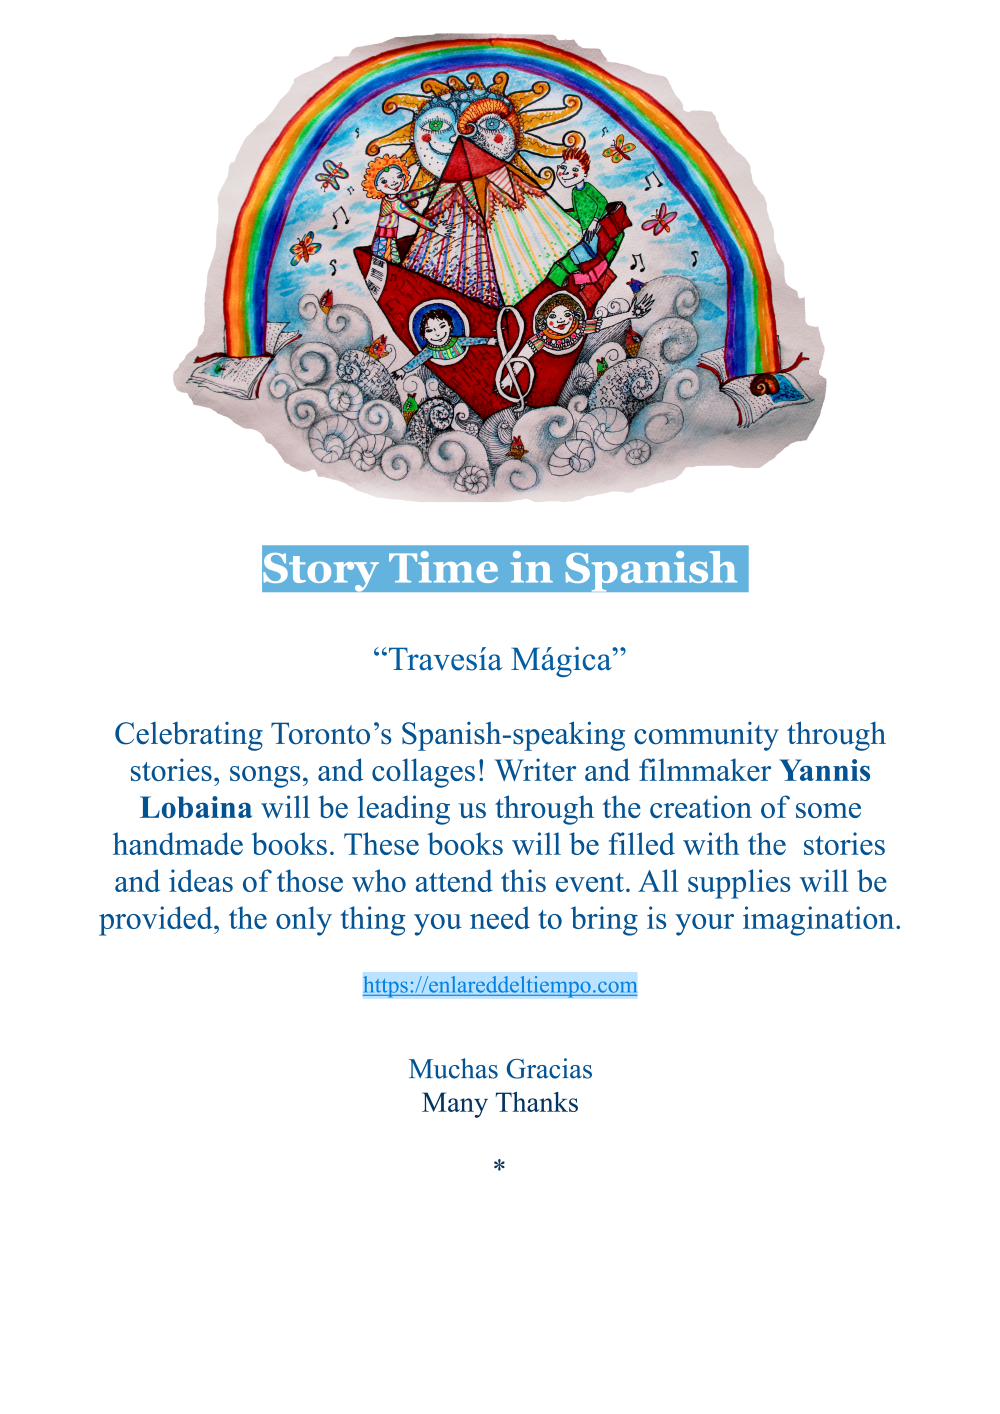 Travesía Mágica: Storytime in Spanish Celebrating Toronto's Spanish-speaking community through stories, songs, and collages! Writer and filmmaker Yannis Lobain will be leading us through the creation of some handmade books. These books will be filled with the stories and ideas of those who attend this event. All supplies will be provided, the only thing you need to bring is your imagination.